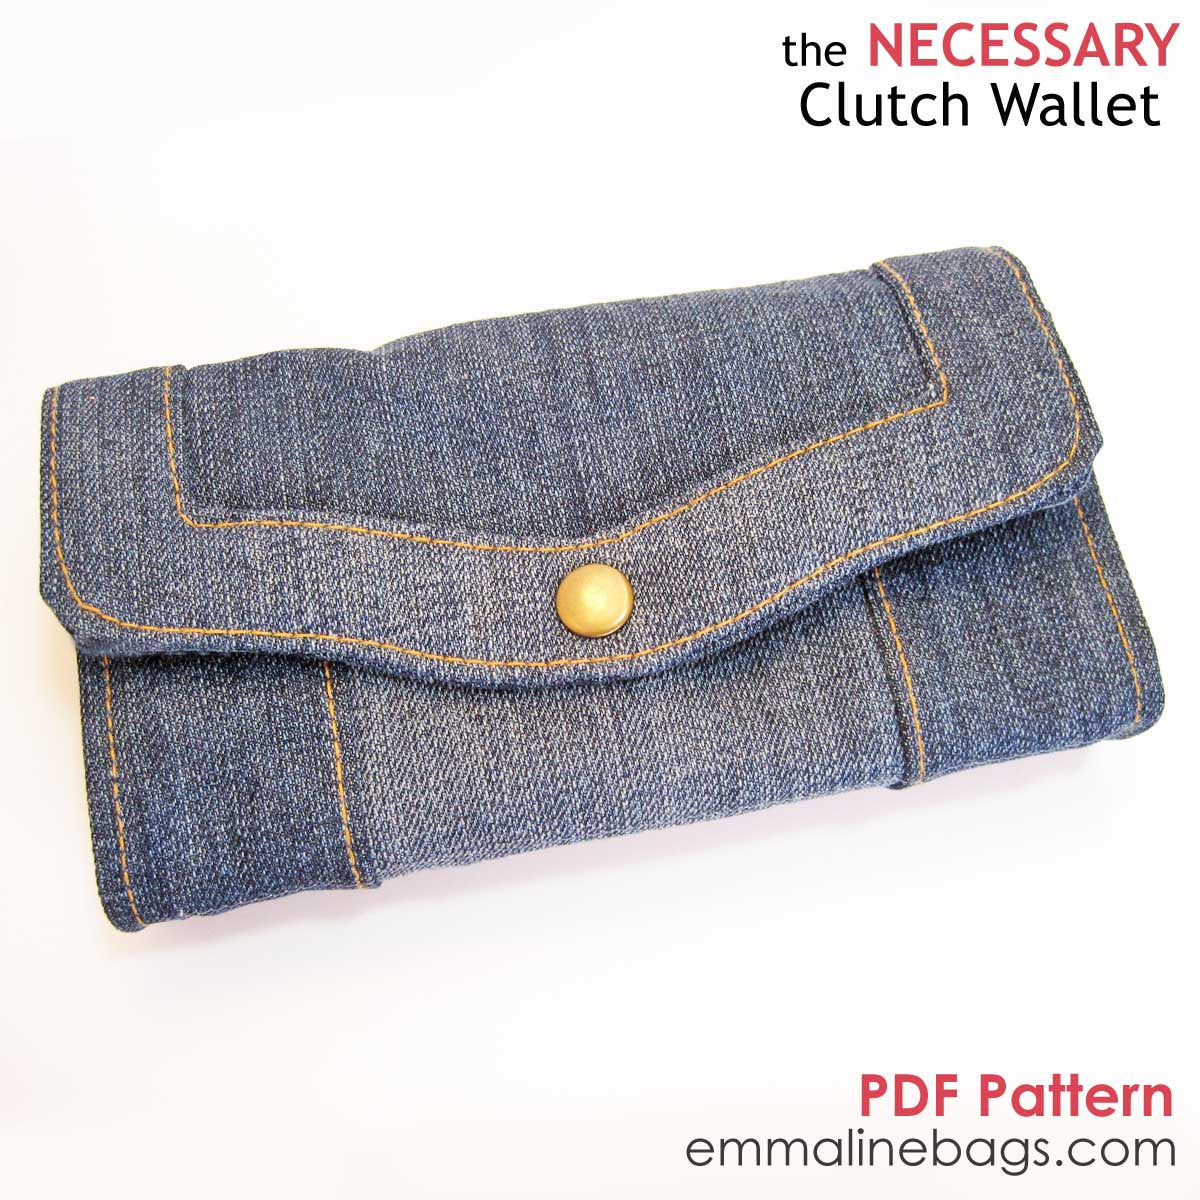 Emmaline Bags - The Necessary Clutch Wallet PDF